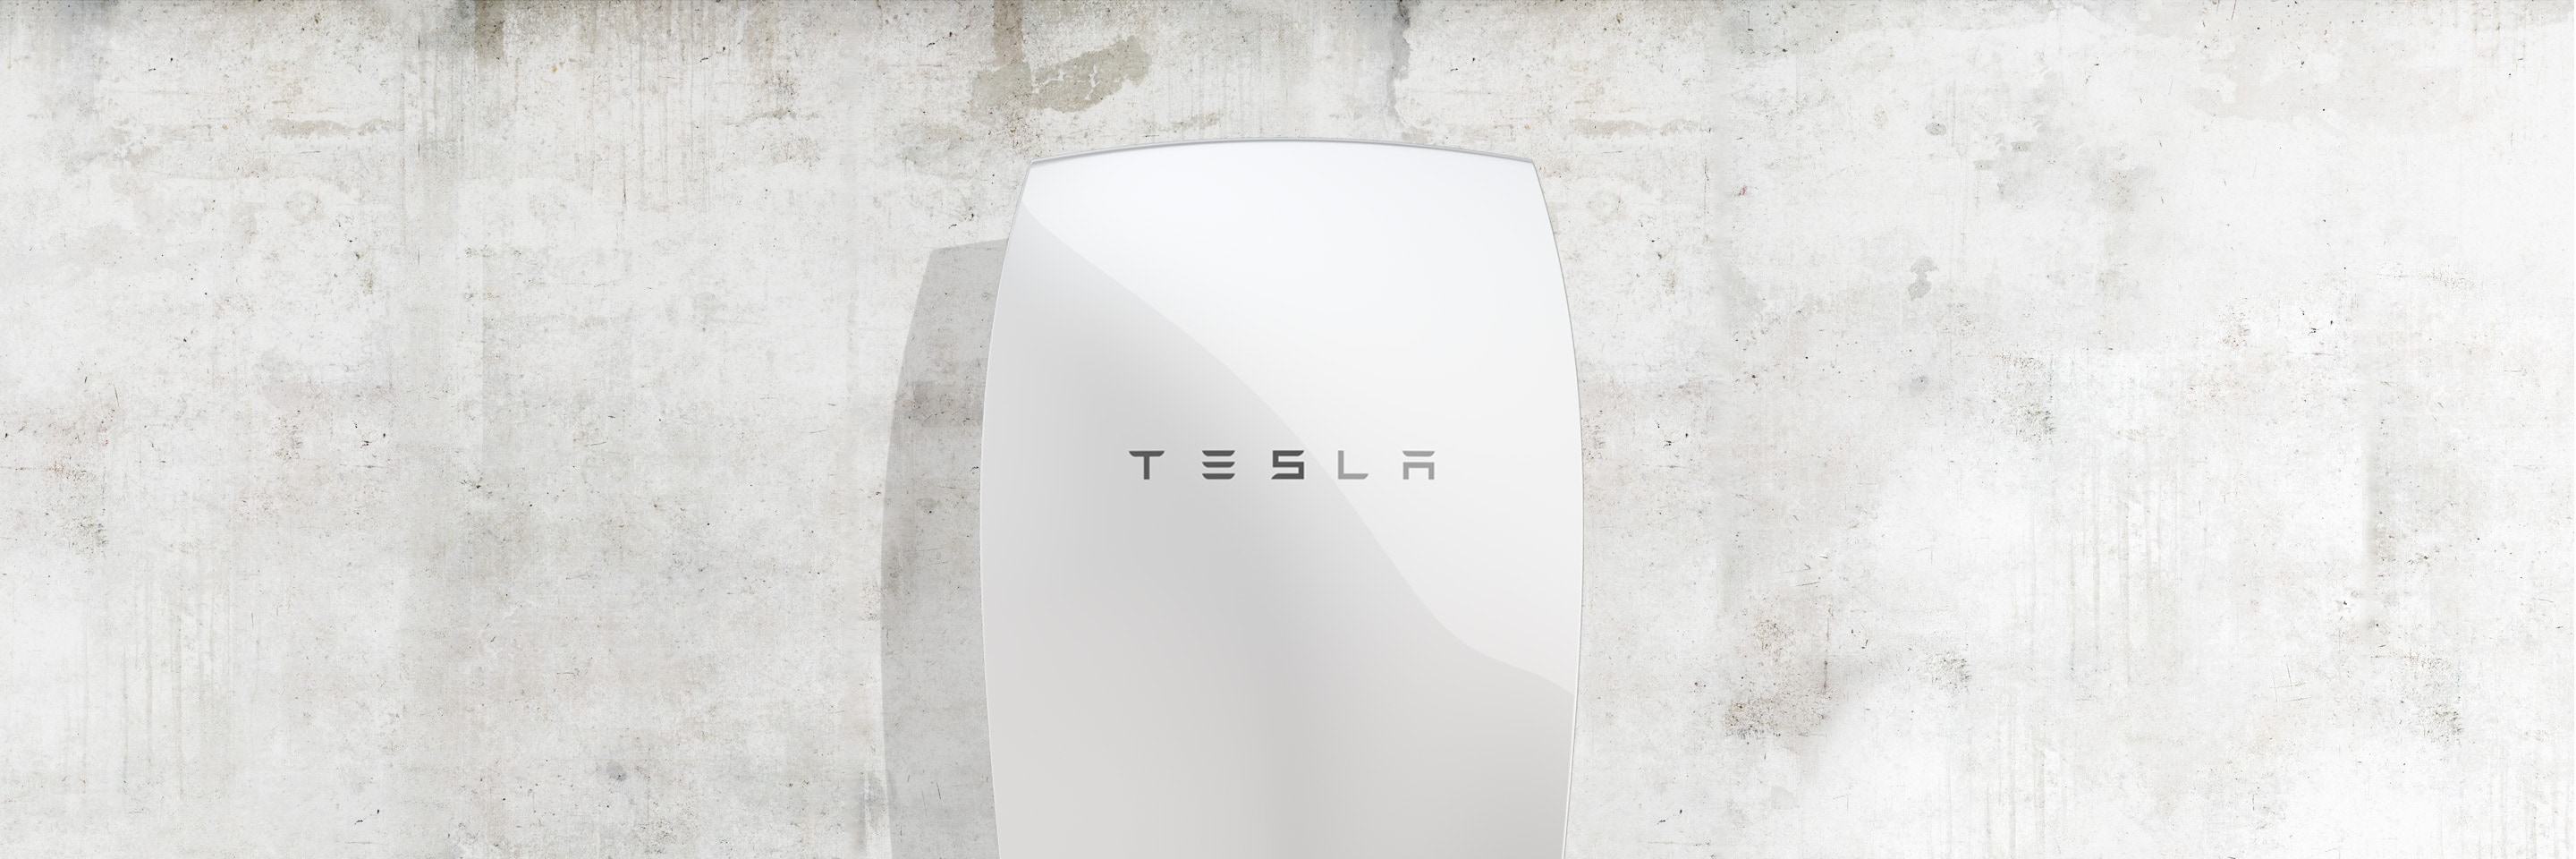 Tesla's Powerwall Battery Looks Like a Game Changer for Data Centers